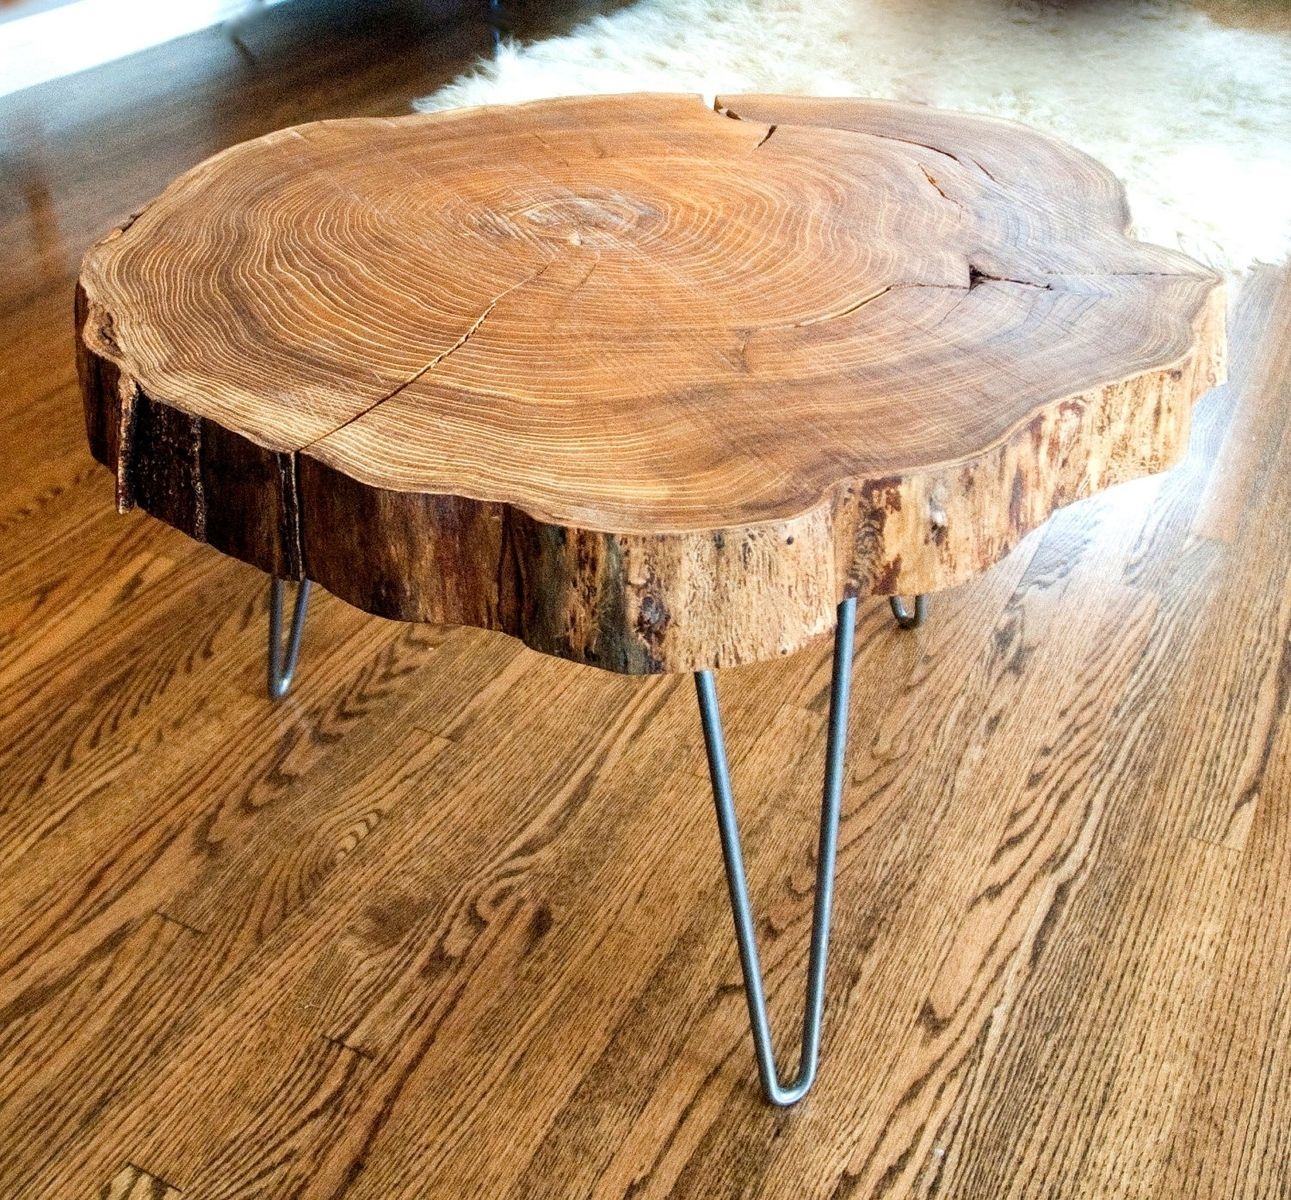 Custom Made Natural Live Edge Round Slab Side Table Coffee Table With Steel Legs Log Coffee Table Coffee Table Wood Eclectic Coffee Tables